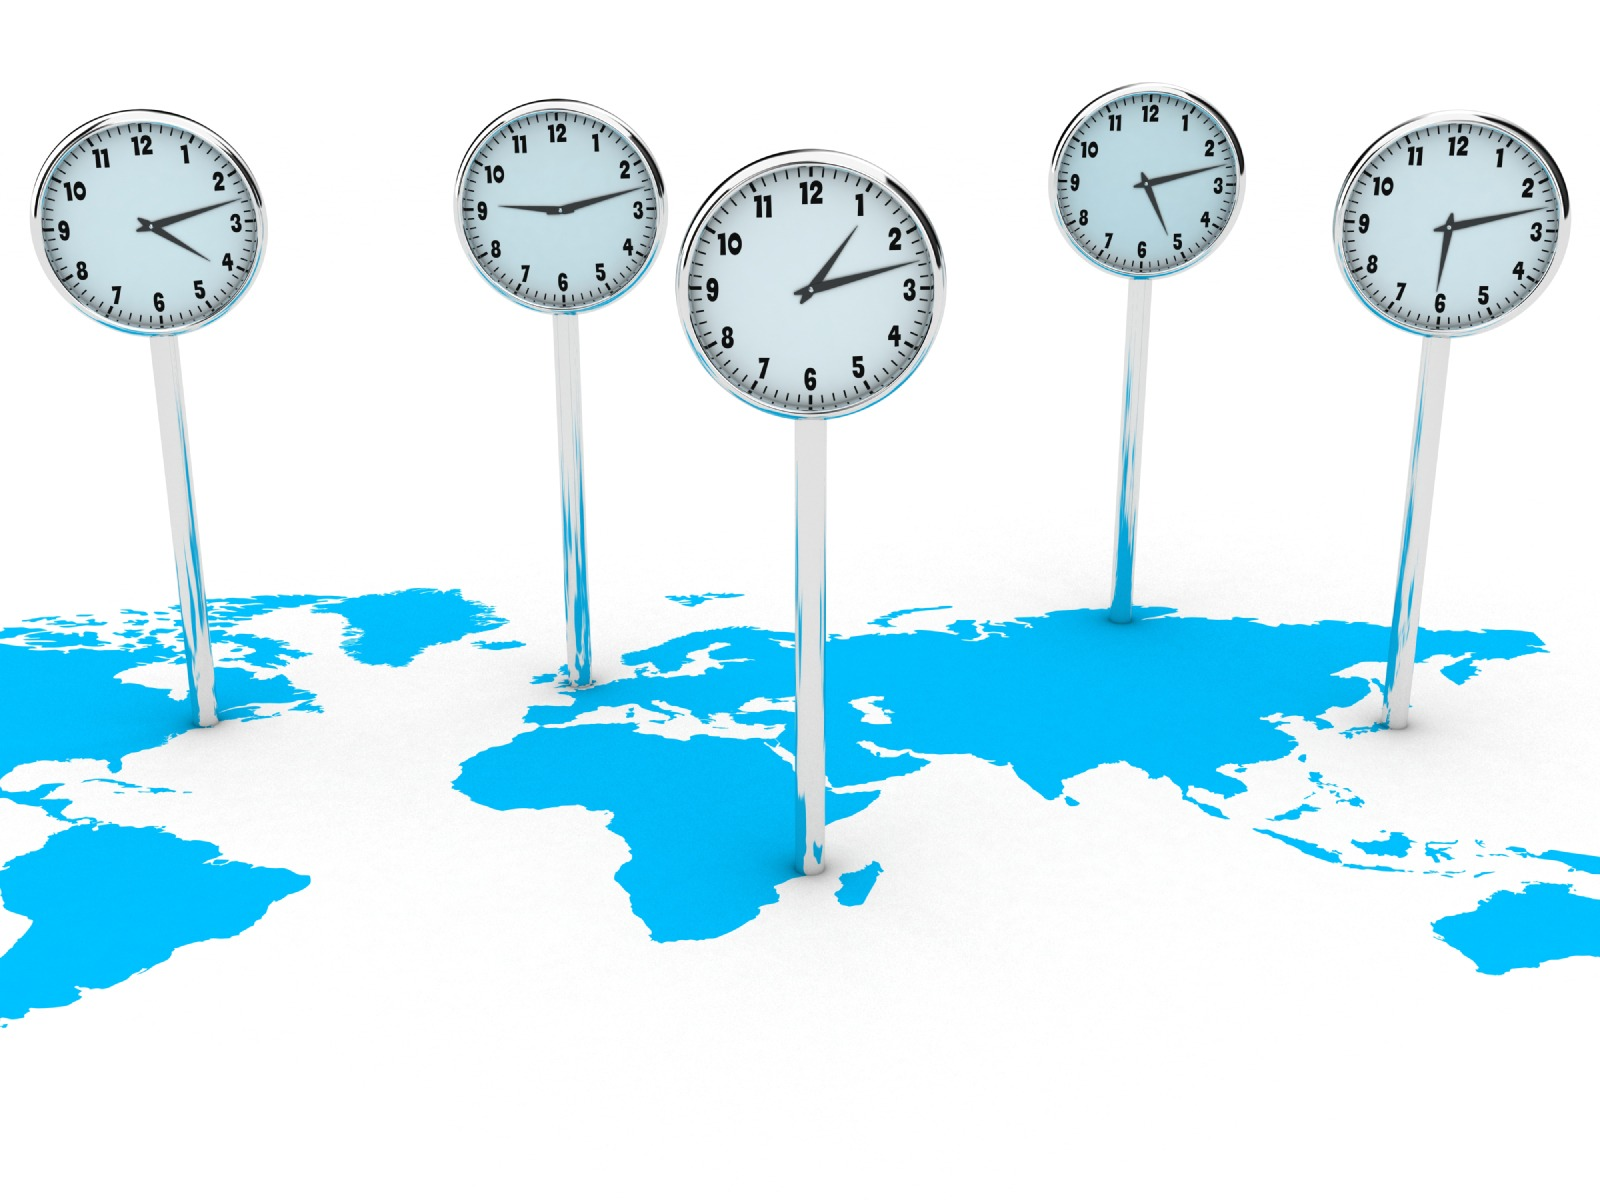 Weekly roundup and time zones, Massachusetts and economic efficiency